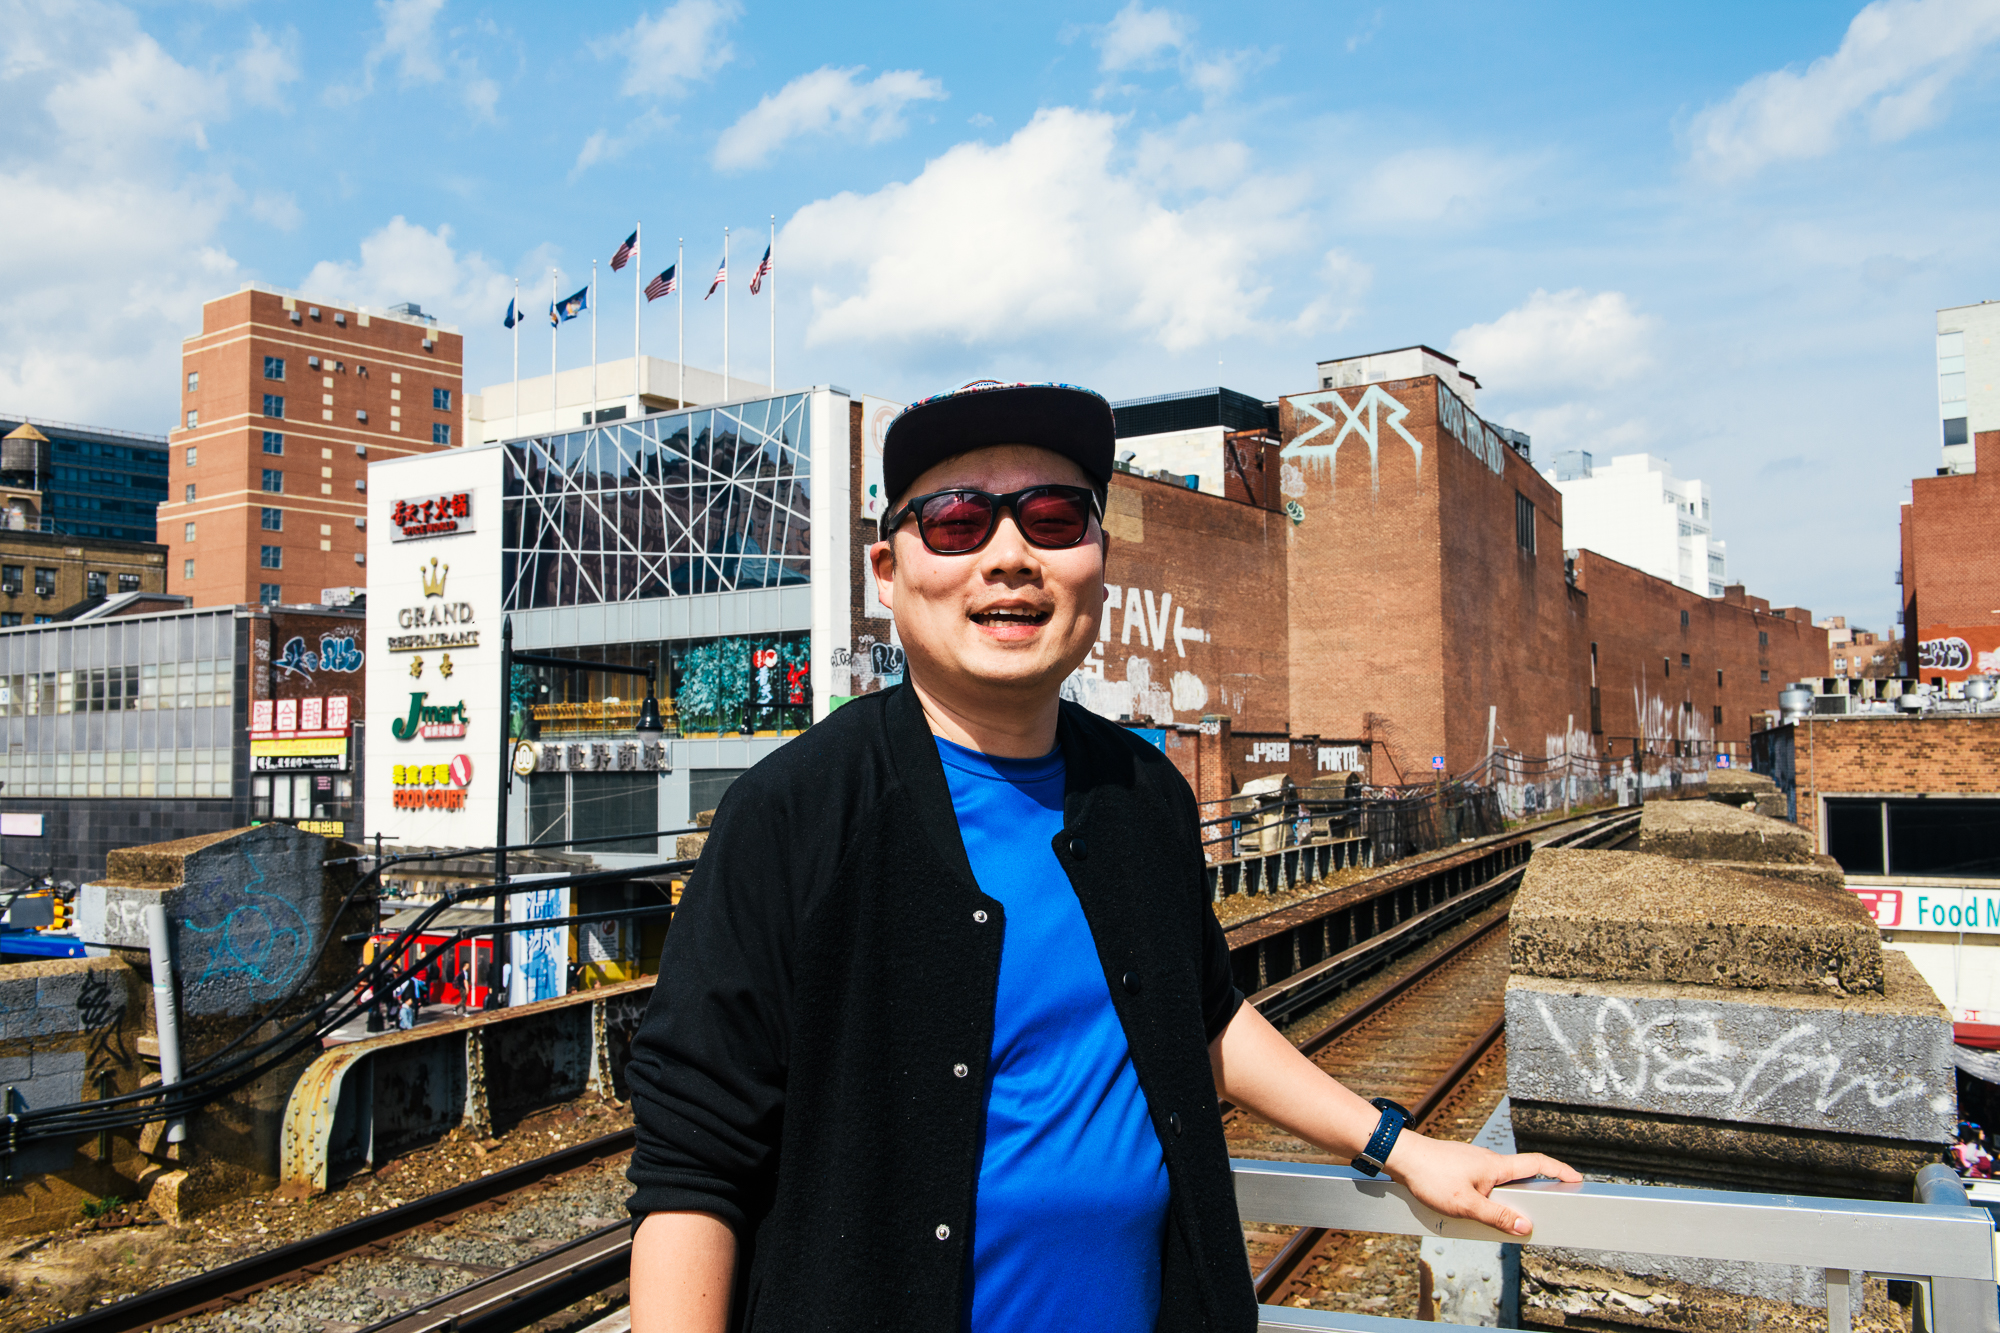 Eddie Mao, the owner of Mao's Bao, shows us around his home neighborhood of Flushing, Queens.